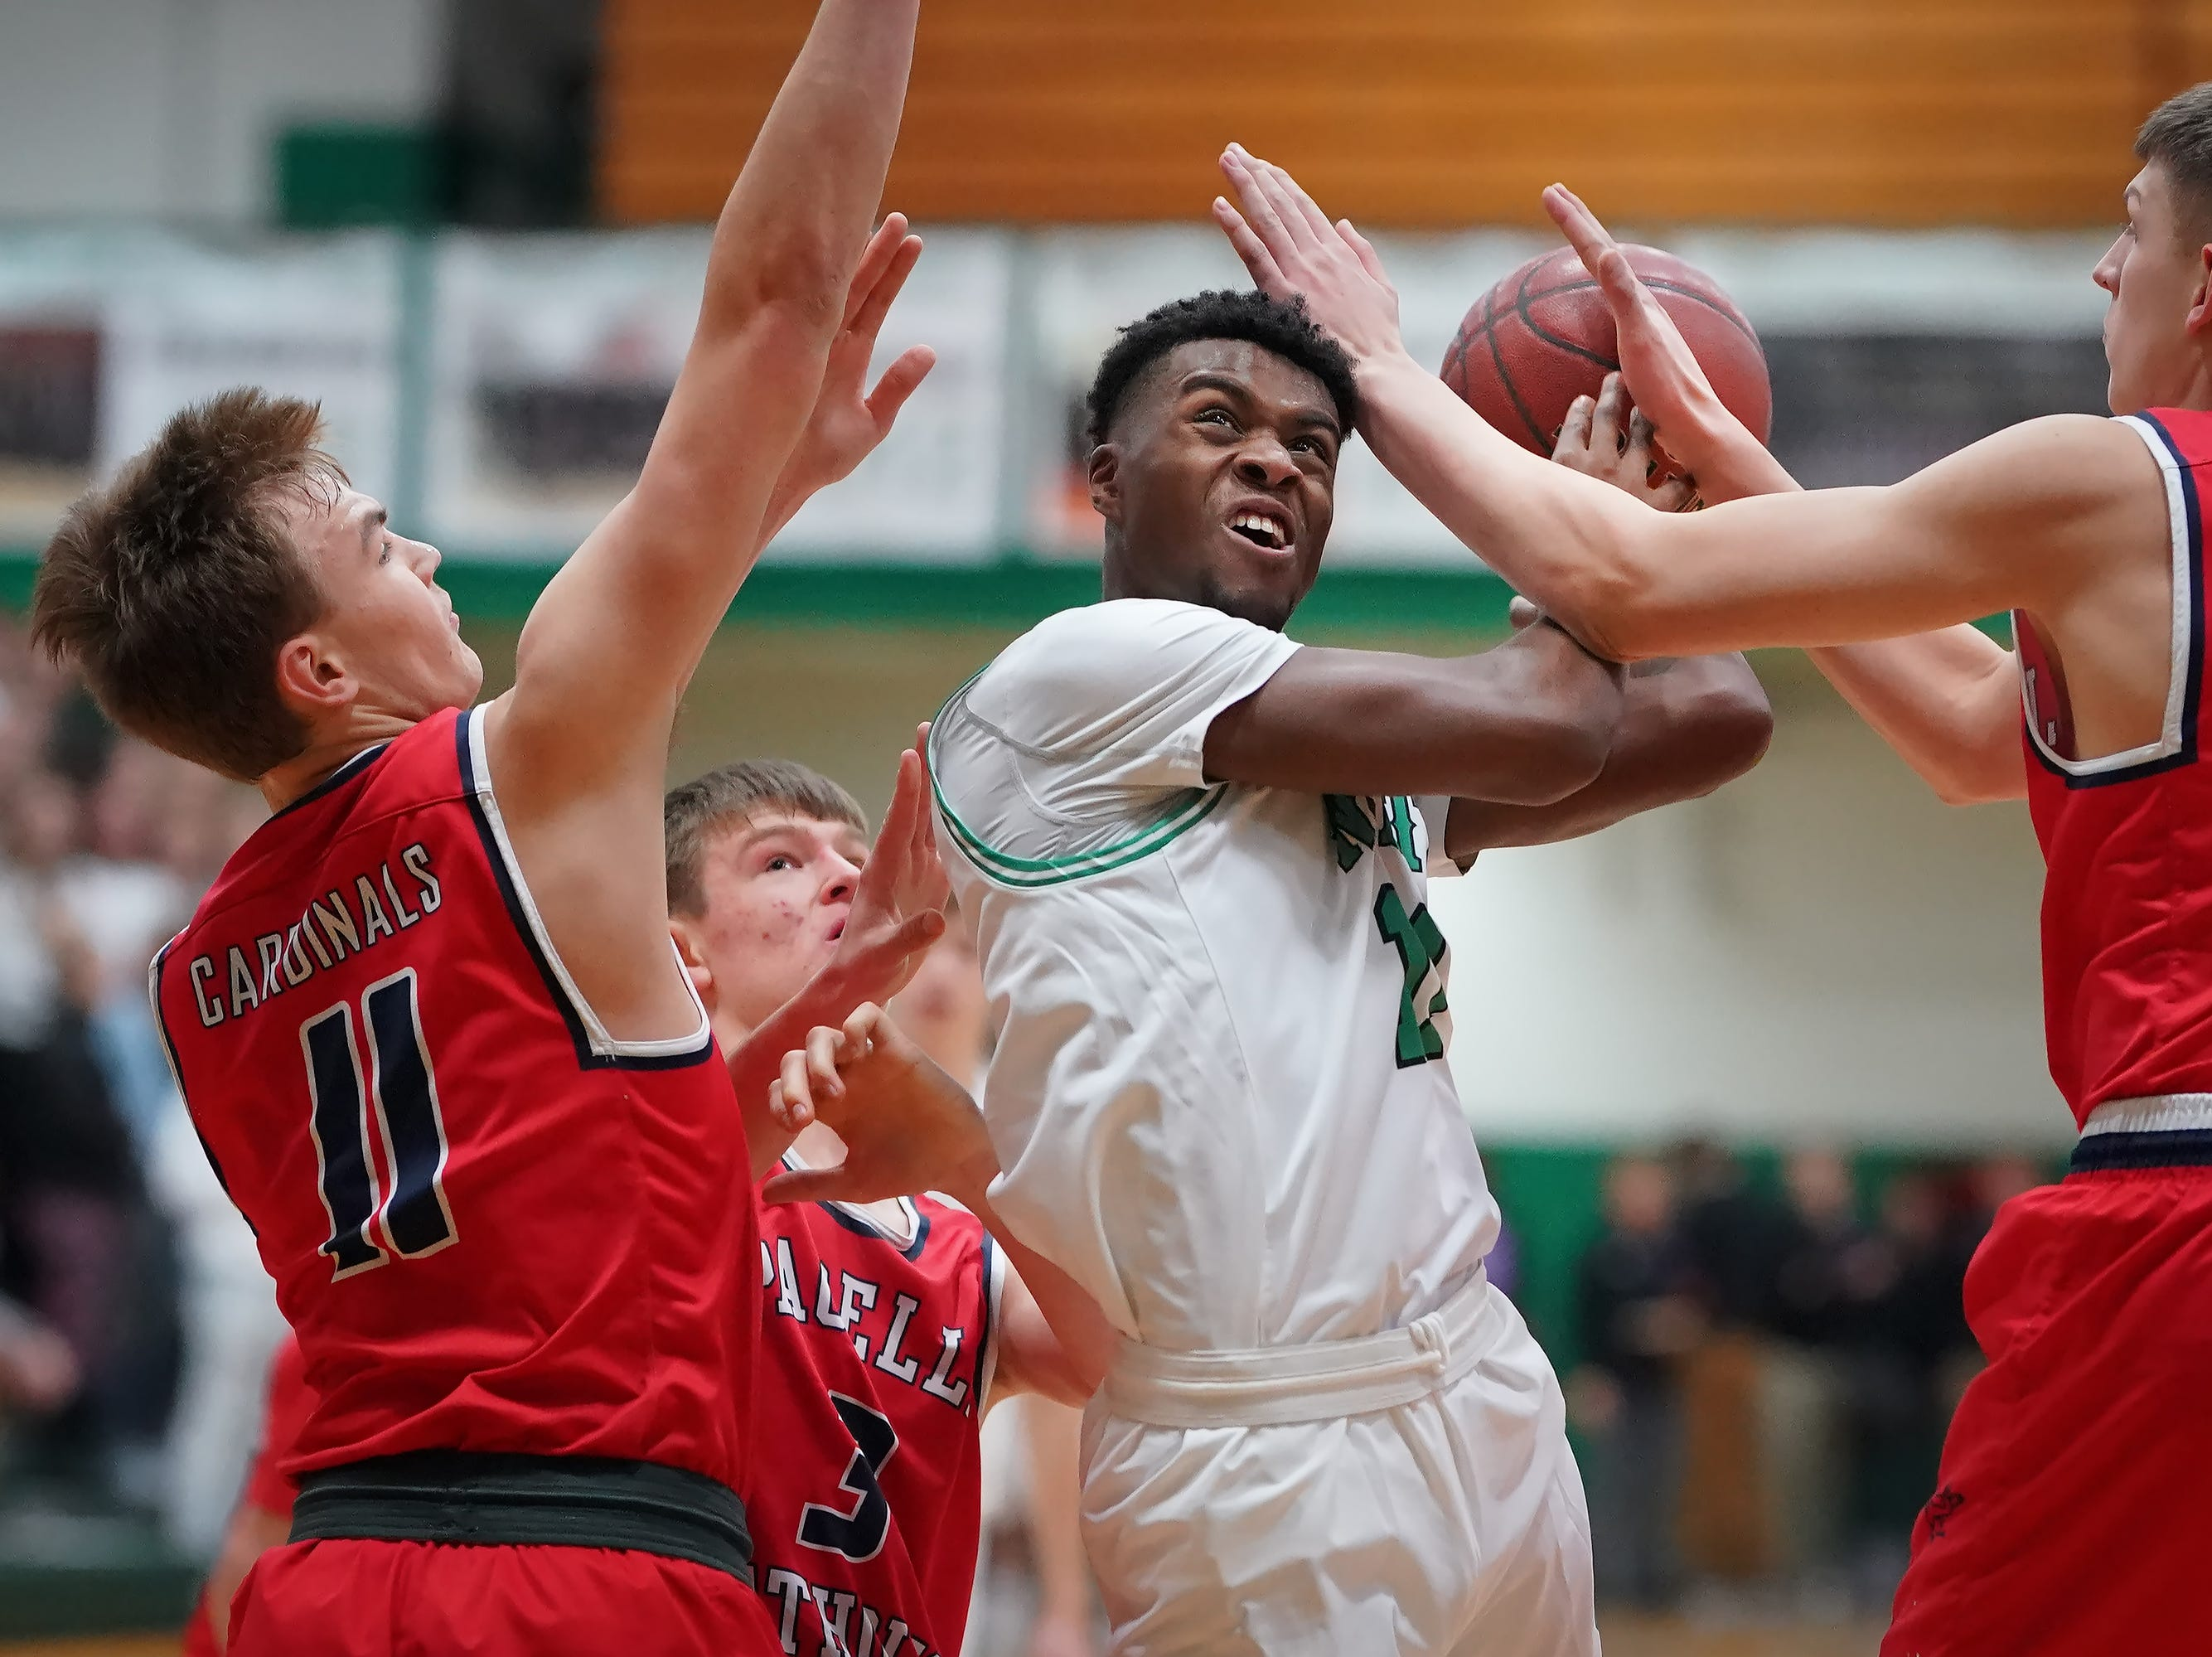 Abe Schiek (11) of Oshkosh North battles his way to the basket. The Oshkosh North Spartans hosted the Stevens Point Pacelli Catholic Cardinals in the Friday night game of the Fox River Brewing Thanksgiving Classic Tournament.